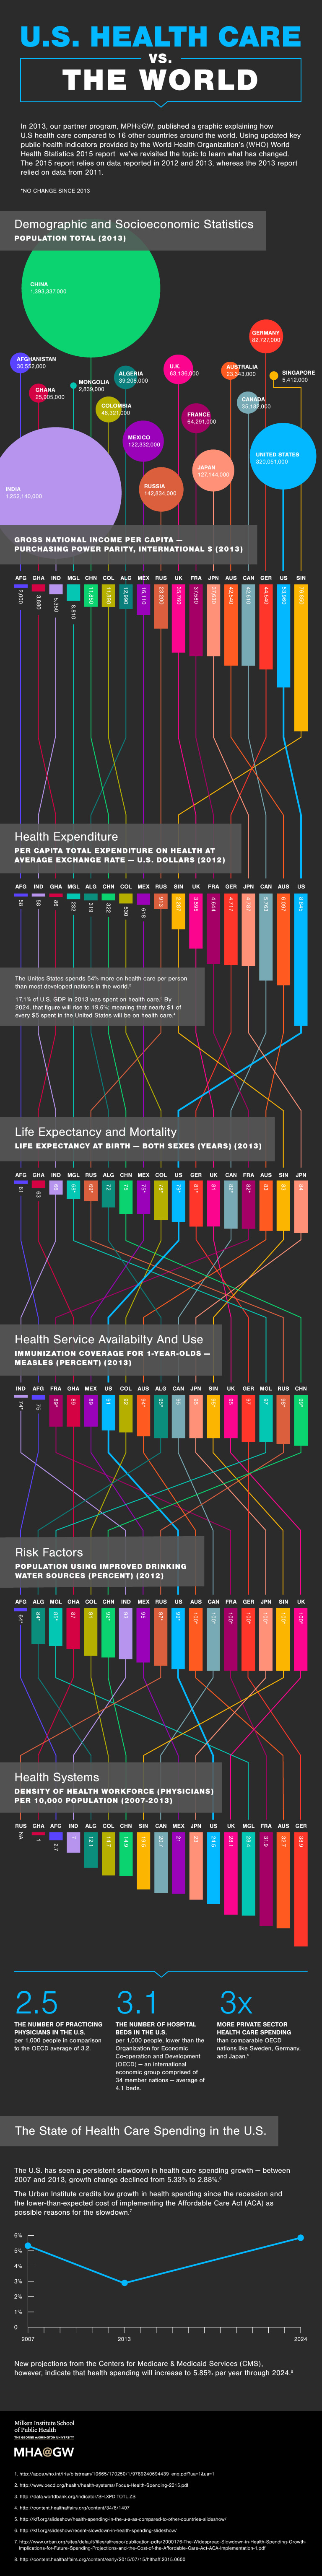 Data visualization showing how U.S. health care compares to 16 other countries around the world.